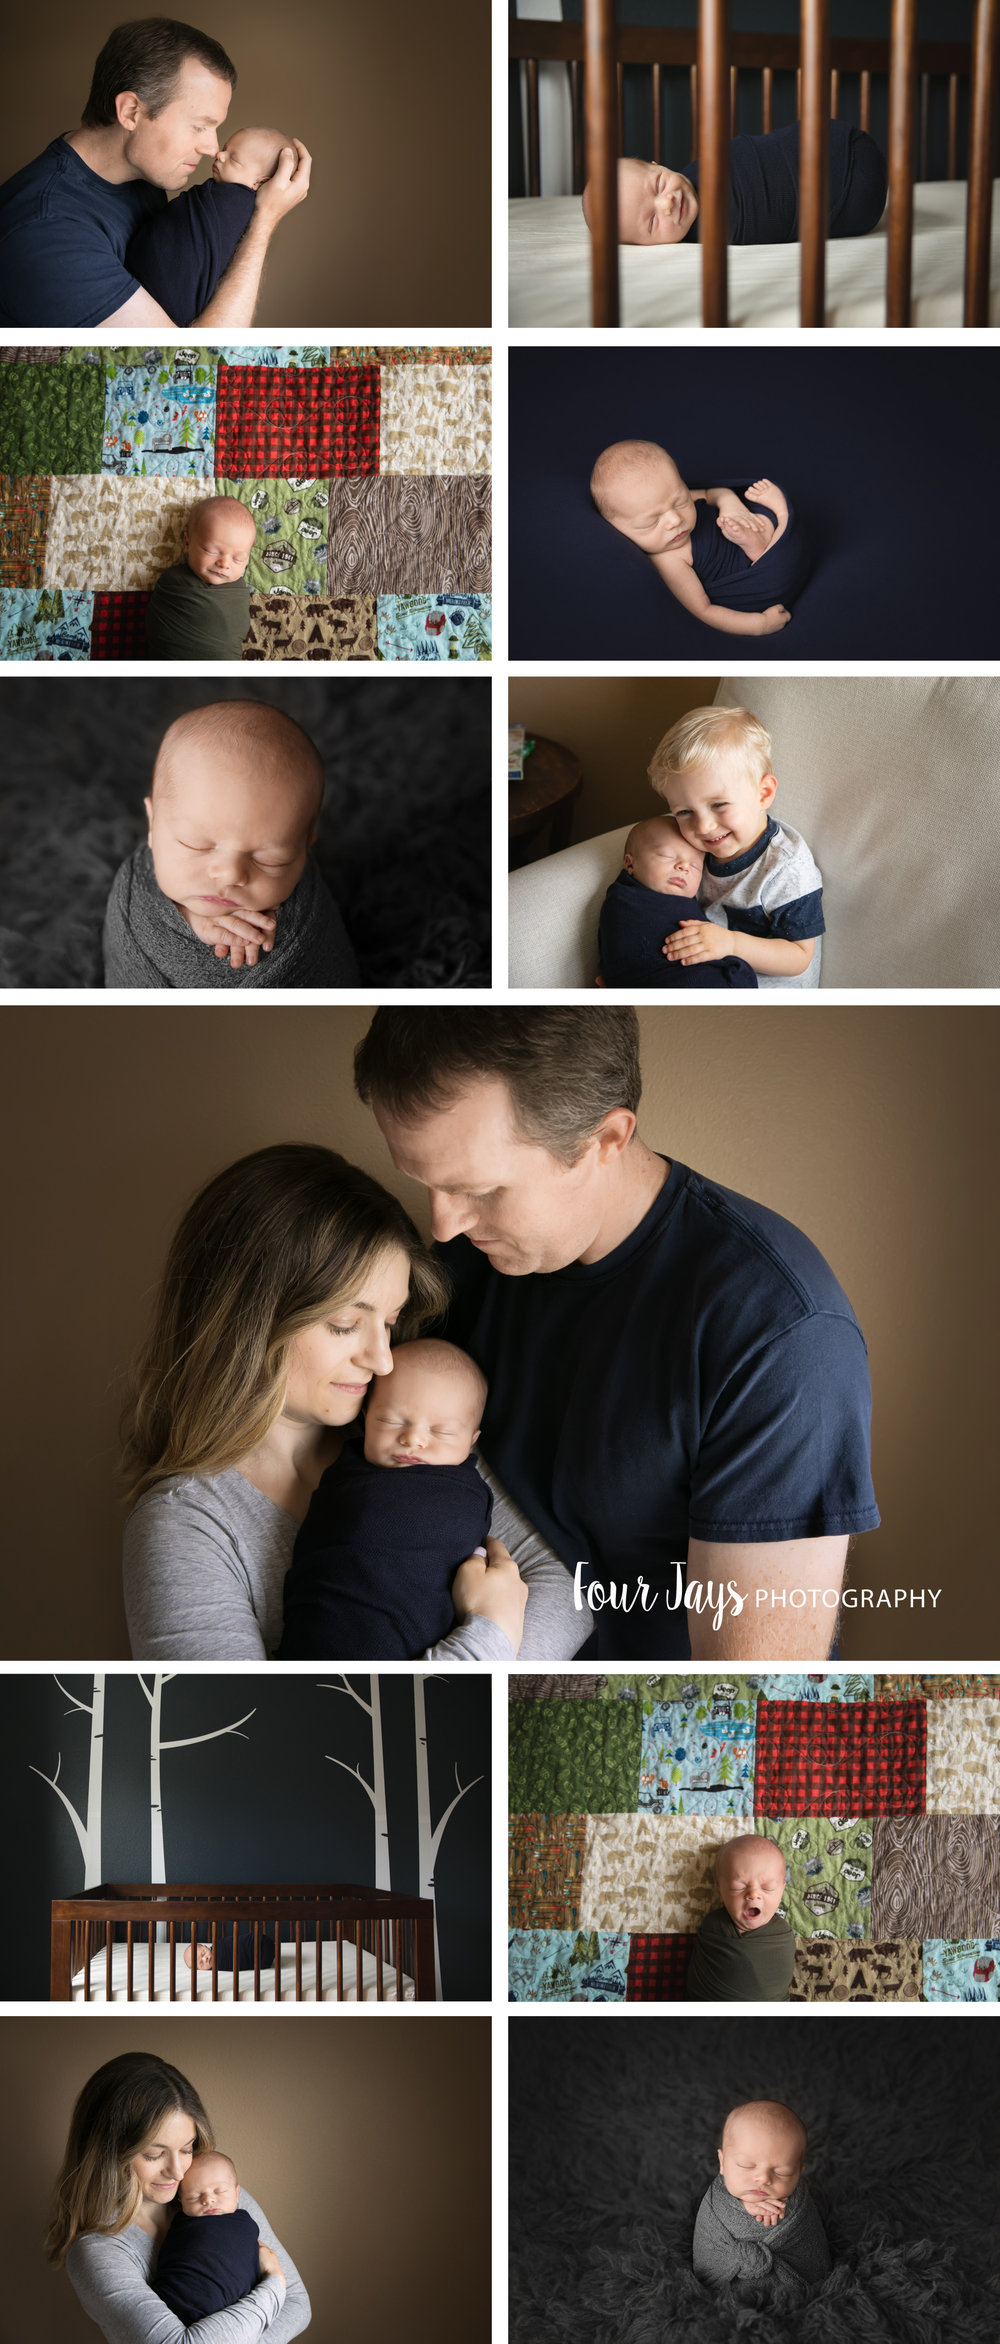 Best newborn in home wrapped photographers oregon city wm.jpg